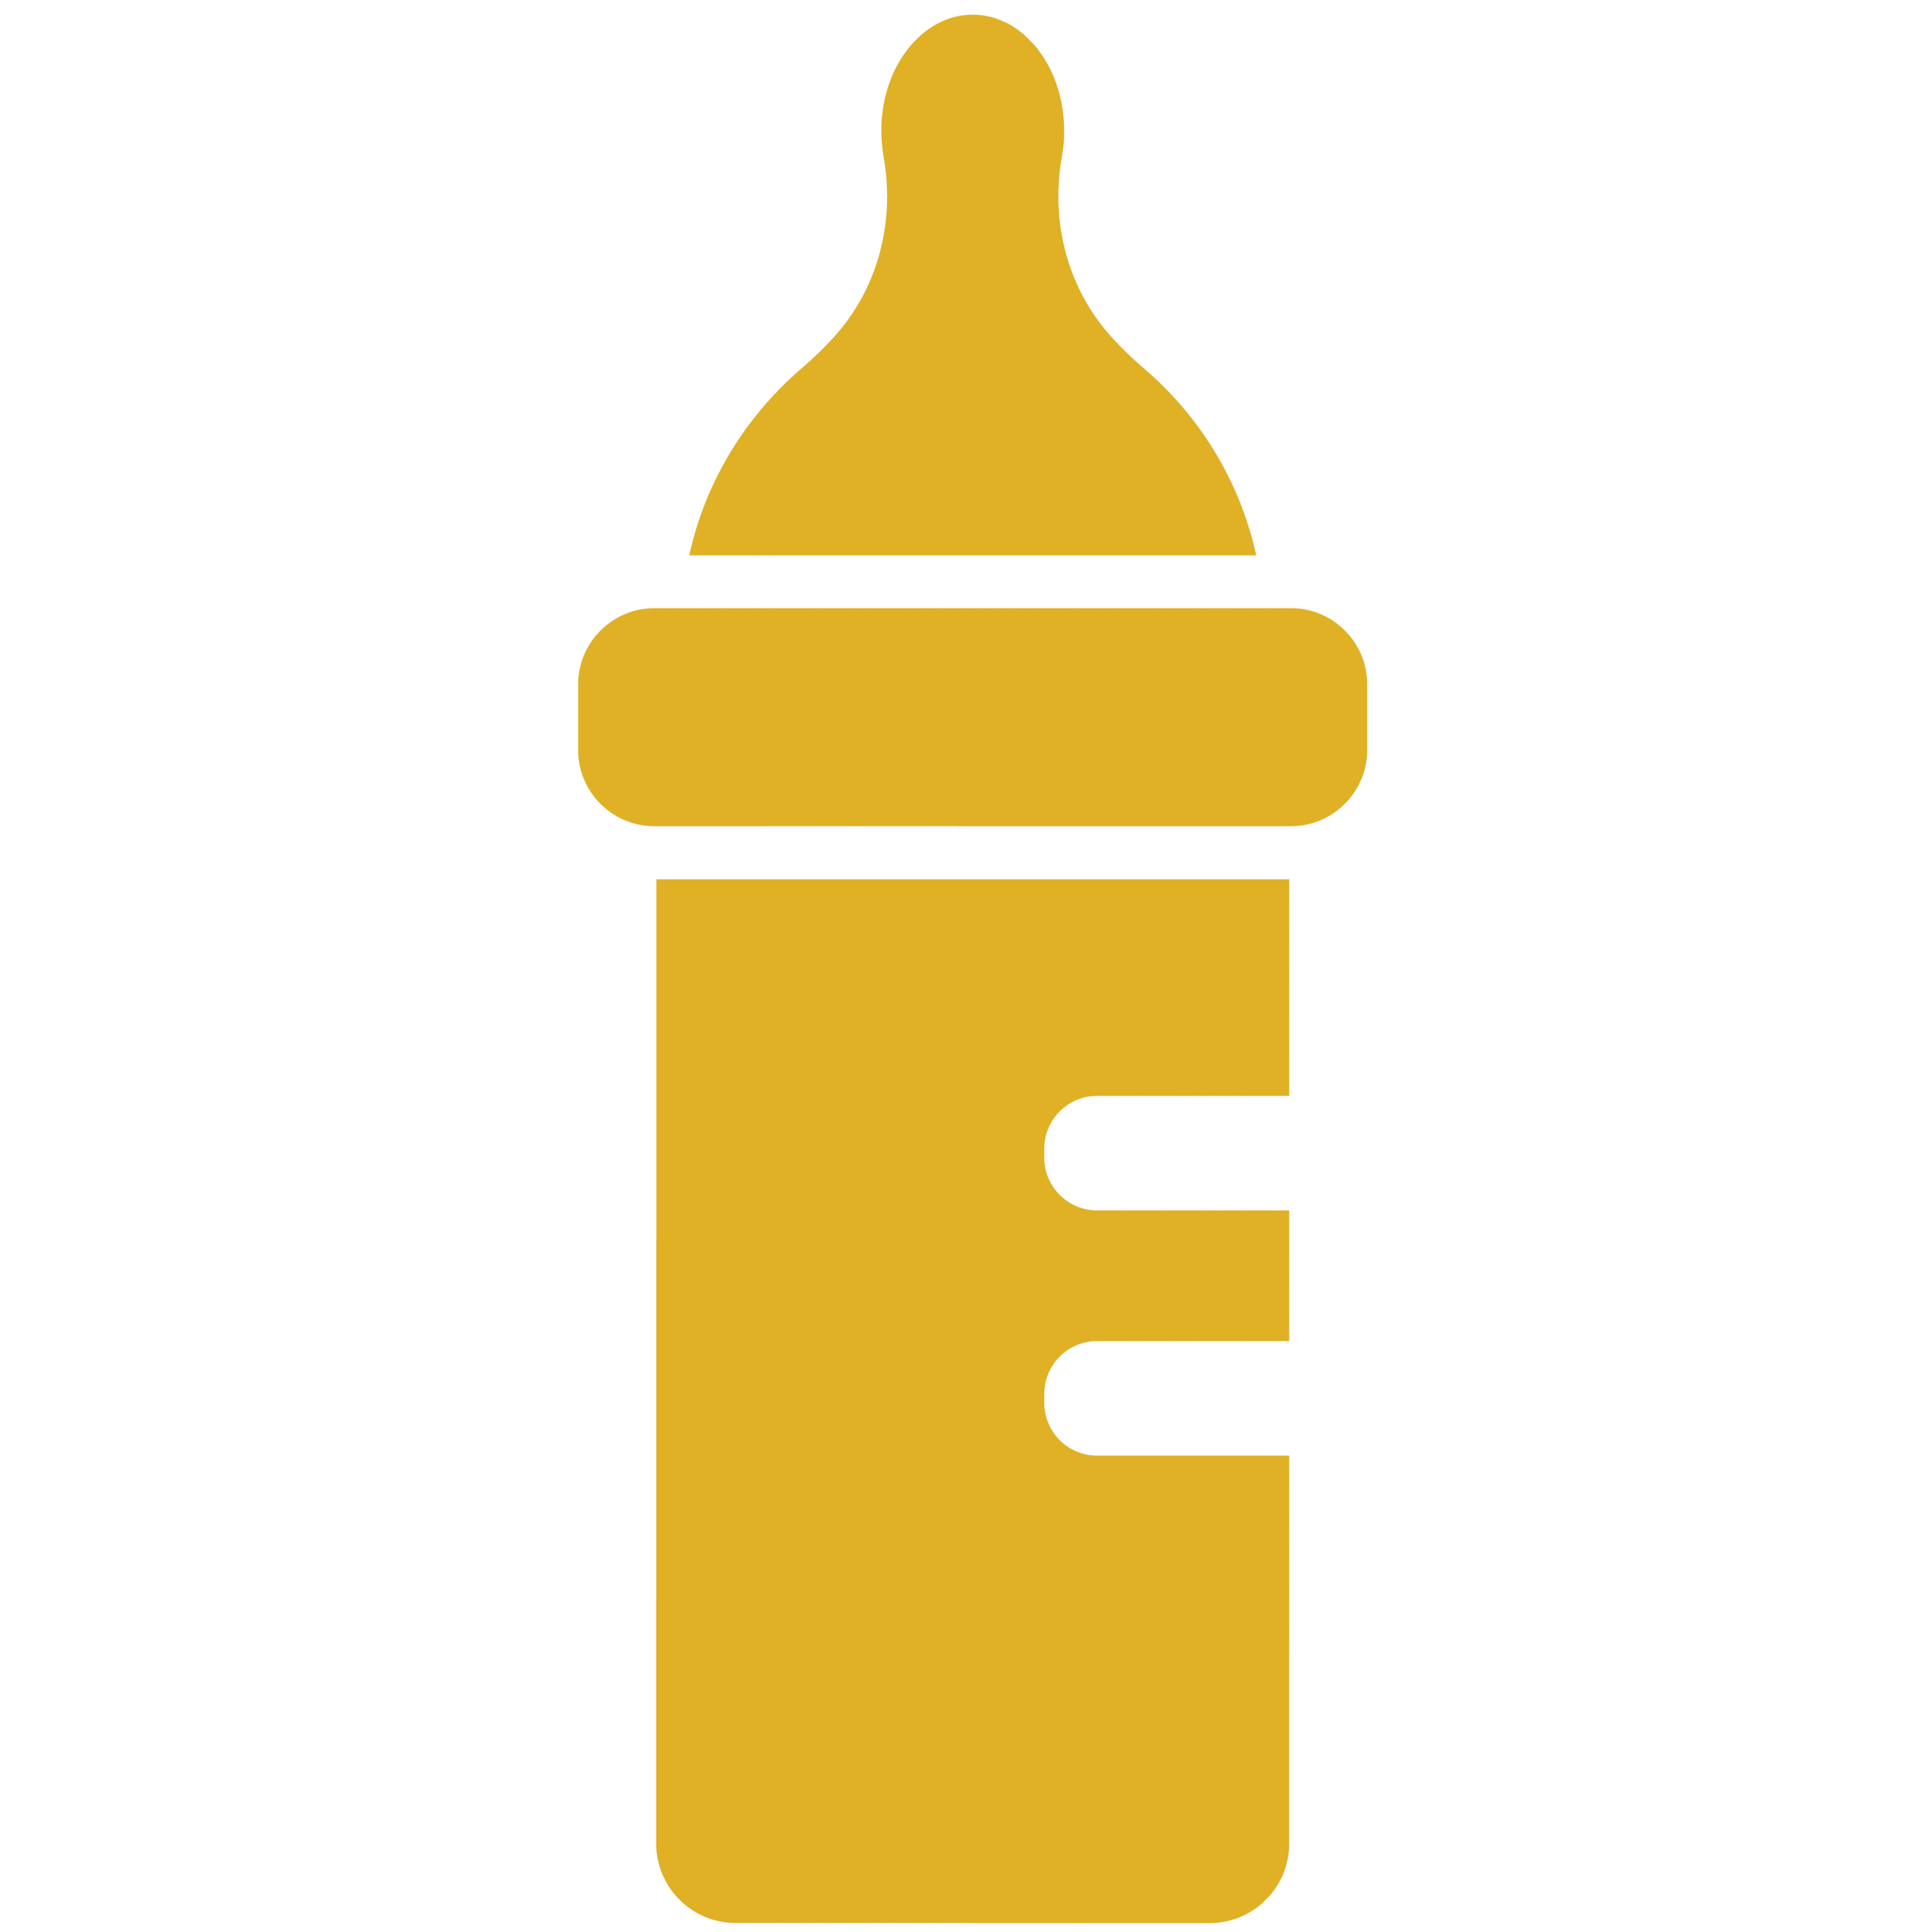 Yellow clipart baby bottle Equipment Home Baby 1